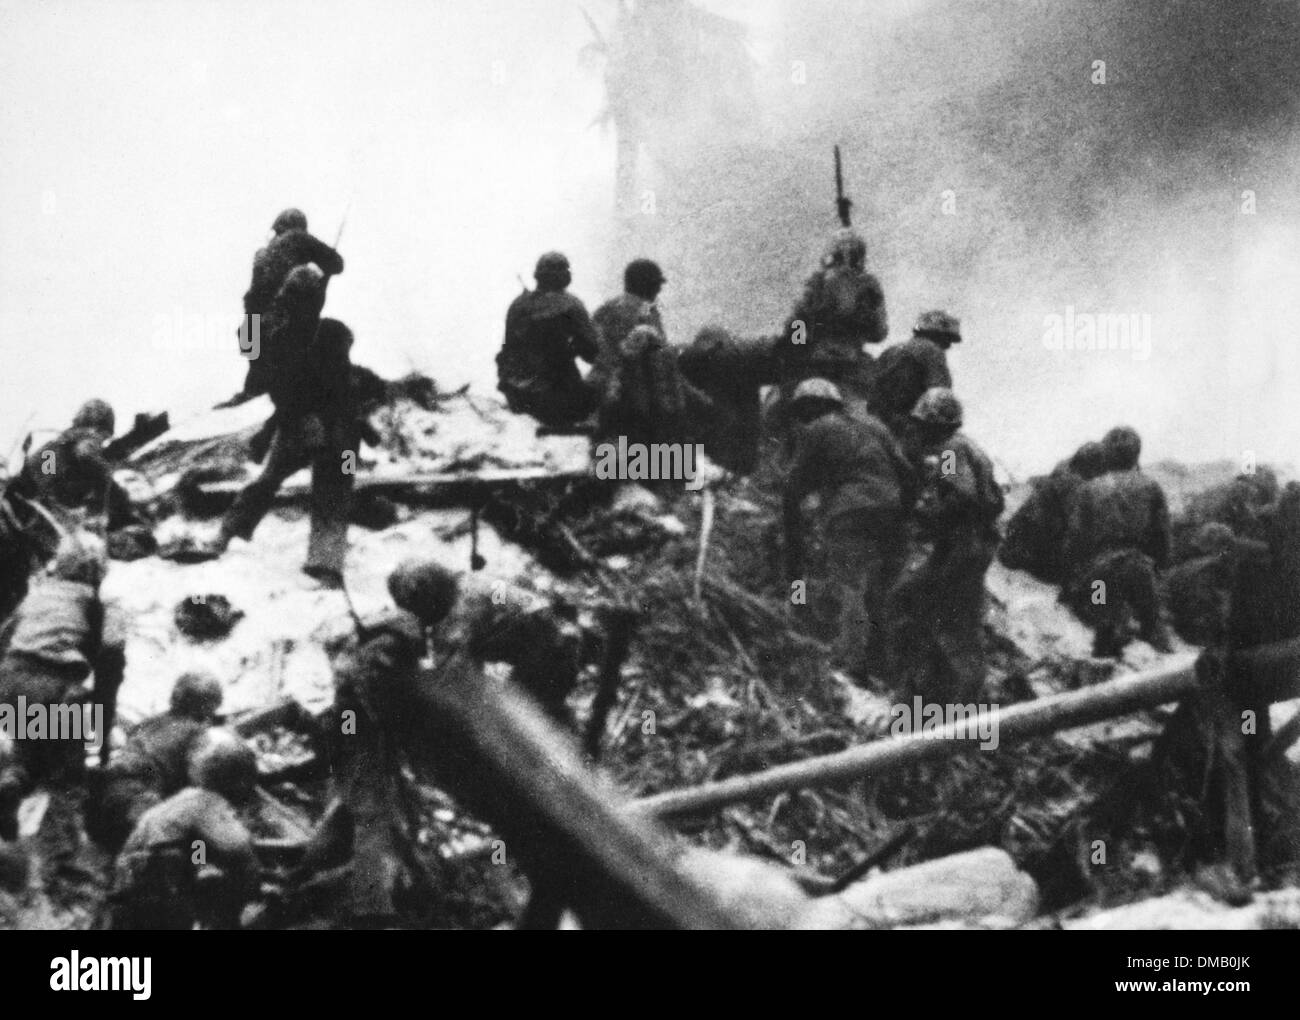 U.S. Marines Storming a Fortified Japanese Position on Tarawa, 1943 - Stock Image